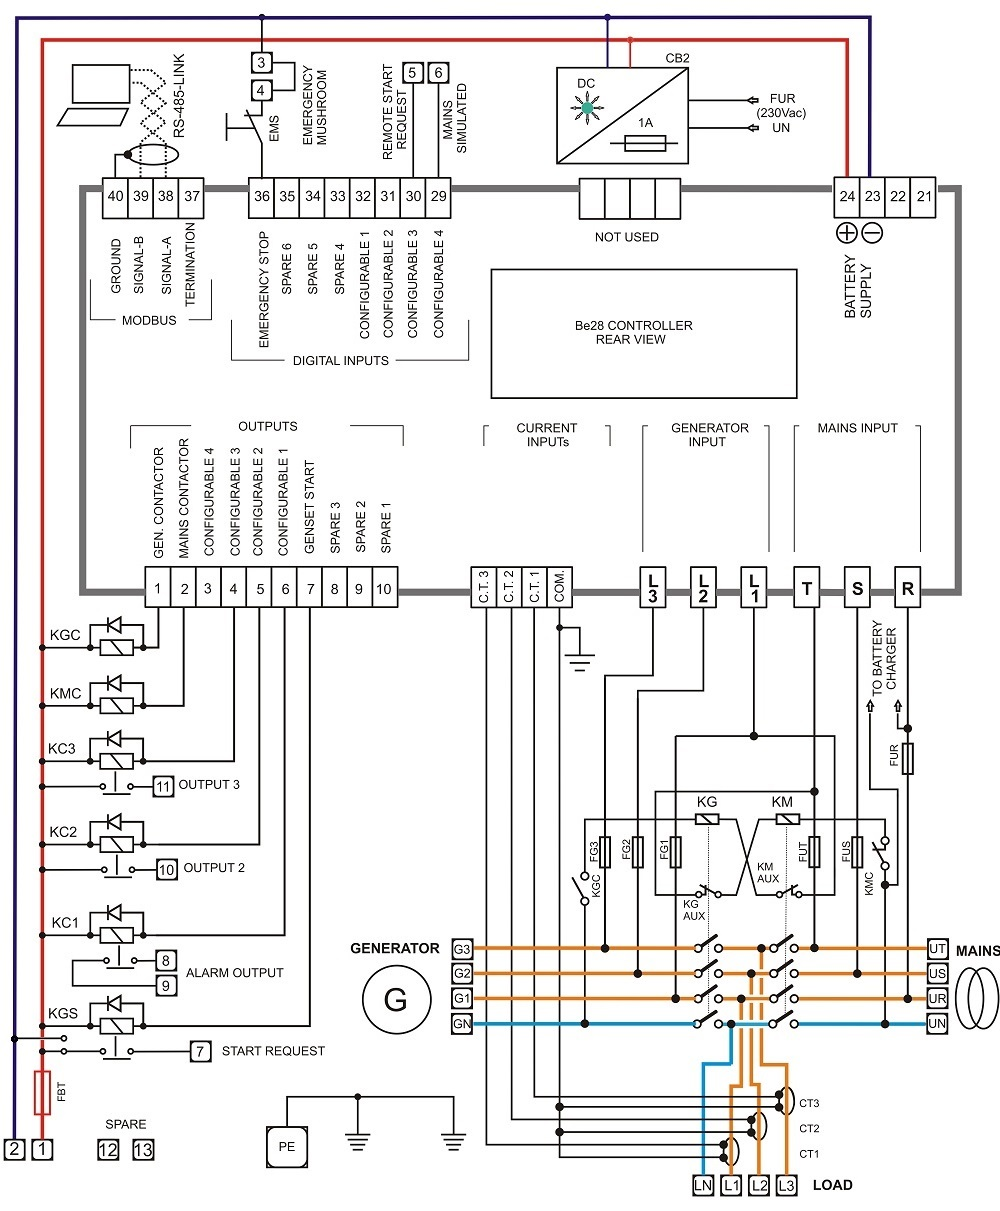 Citroen C3 Wiring Diagram Free Download - 2001 Ford Escape Brake Switch Wiring  Diagram for Wiring Diagram Schematics | Citroen C5 Wiring Diagram Free |  | Wiring Diagram Schematics